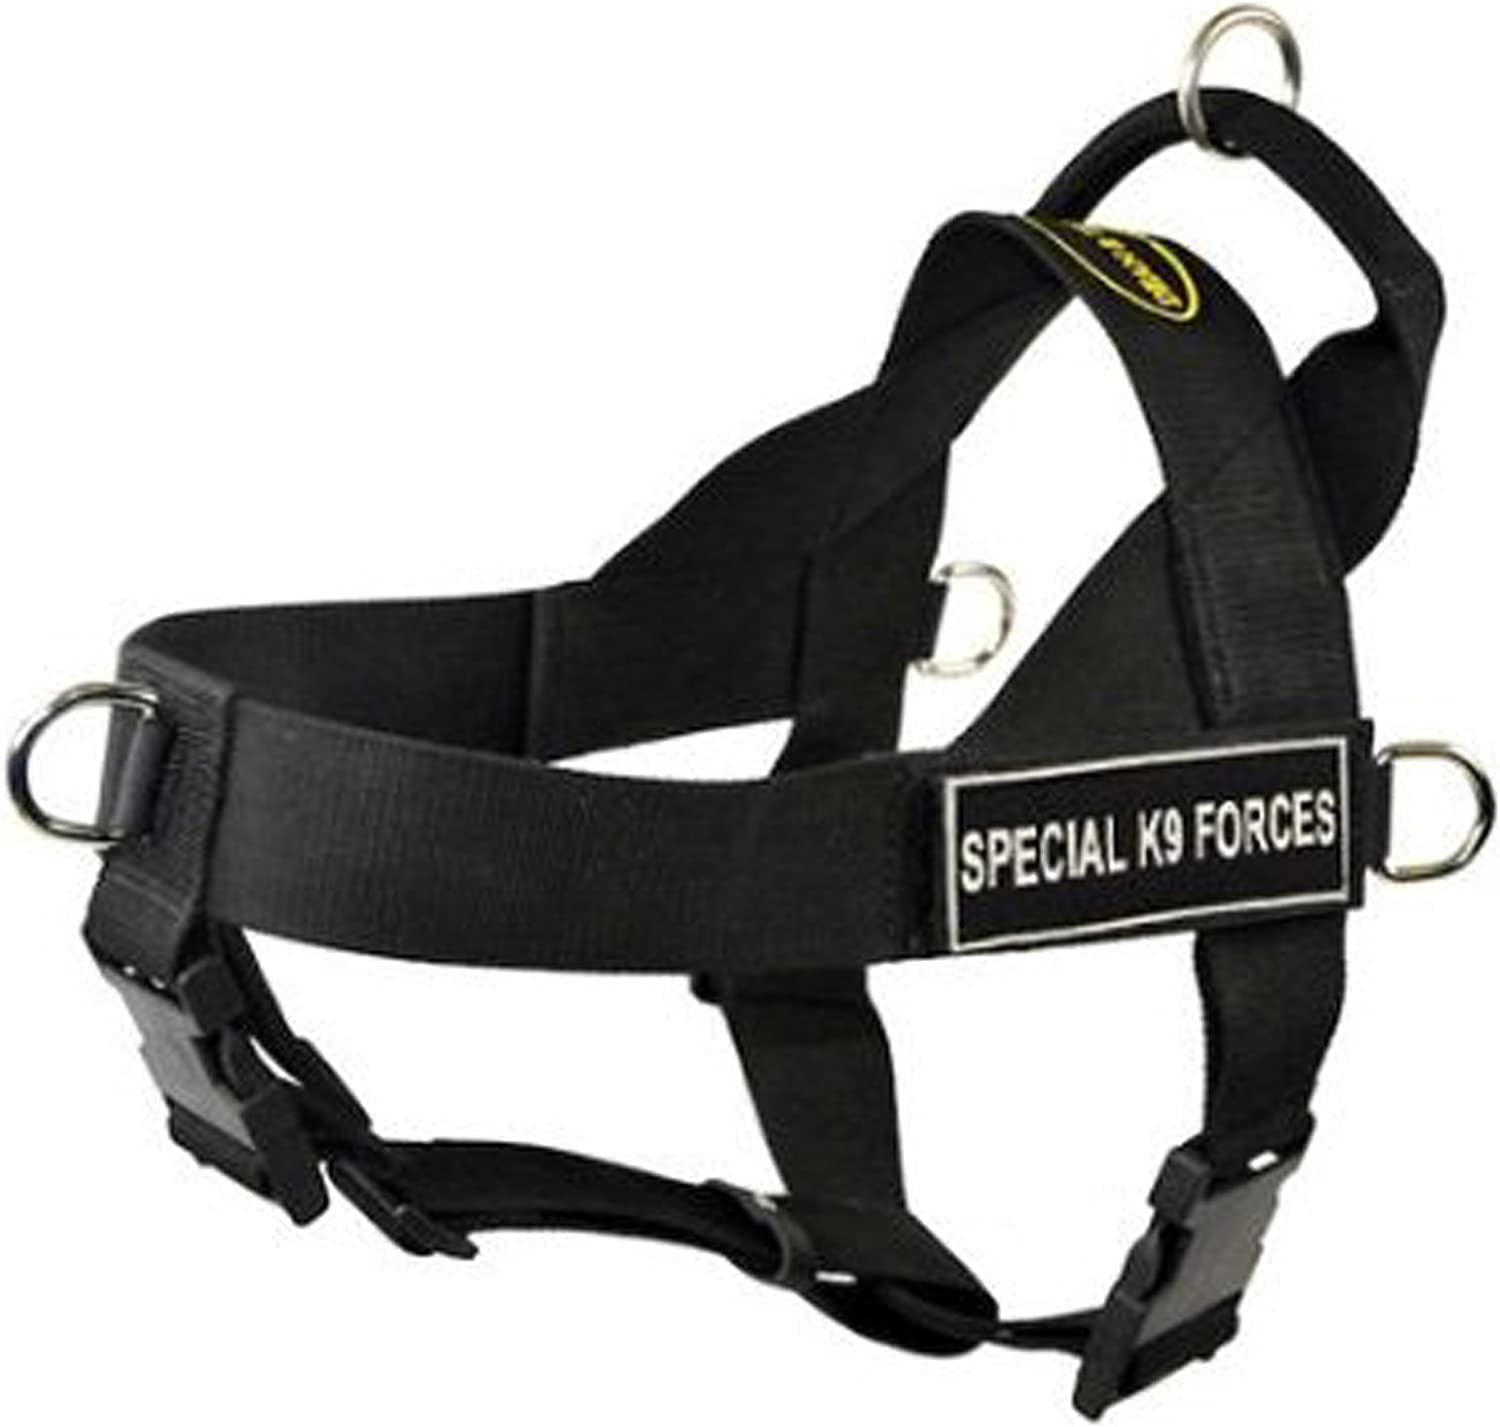 DT Universal No Pull Dog Harness, Special K9 Forces, Black, XSmall  Fits Girth Size  53cm to 63.5cm